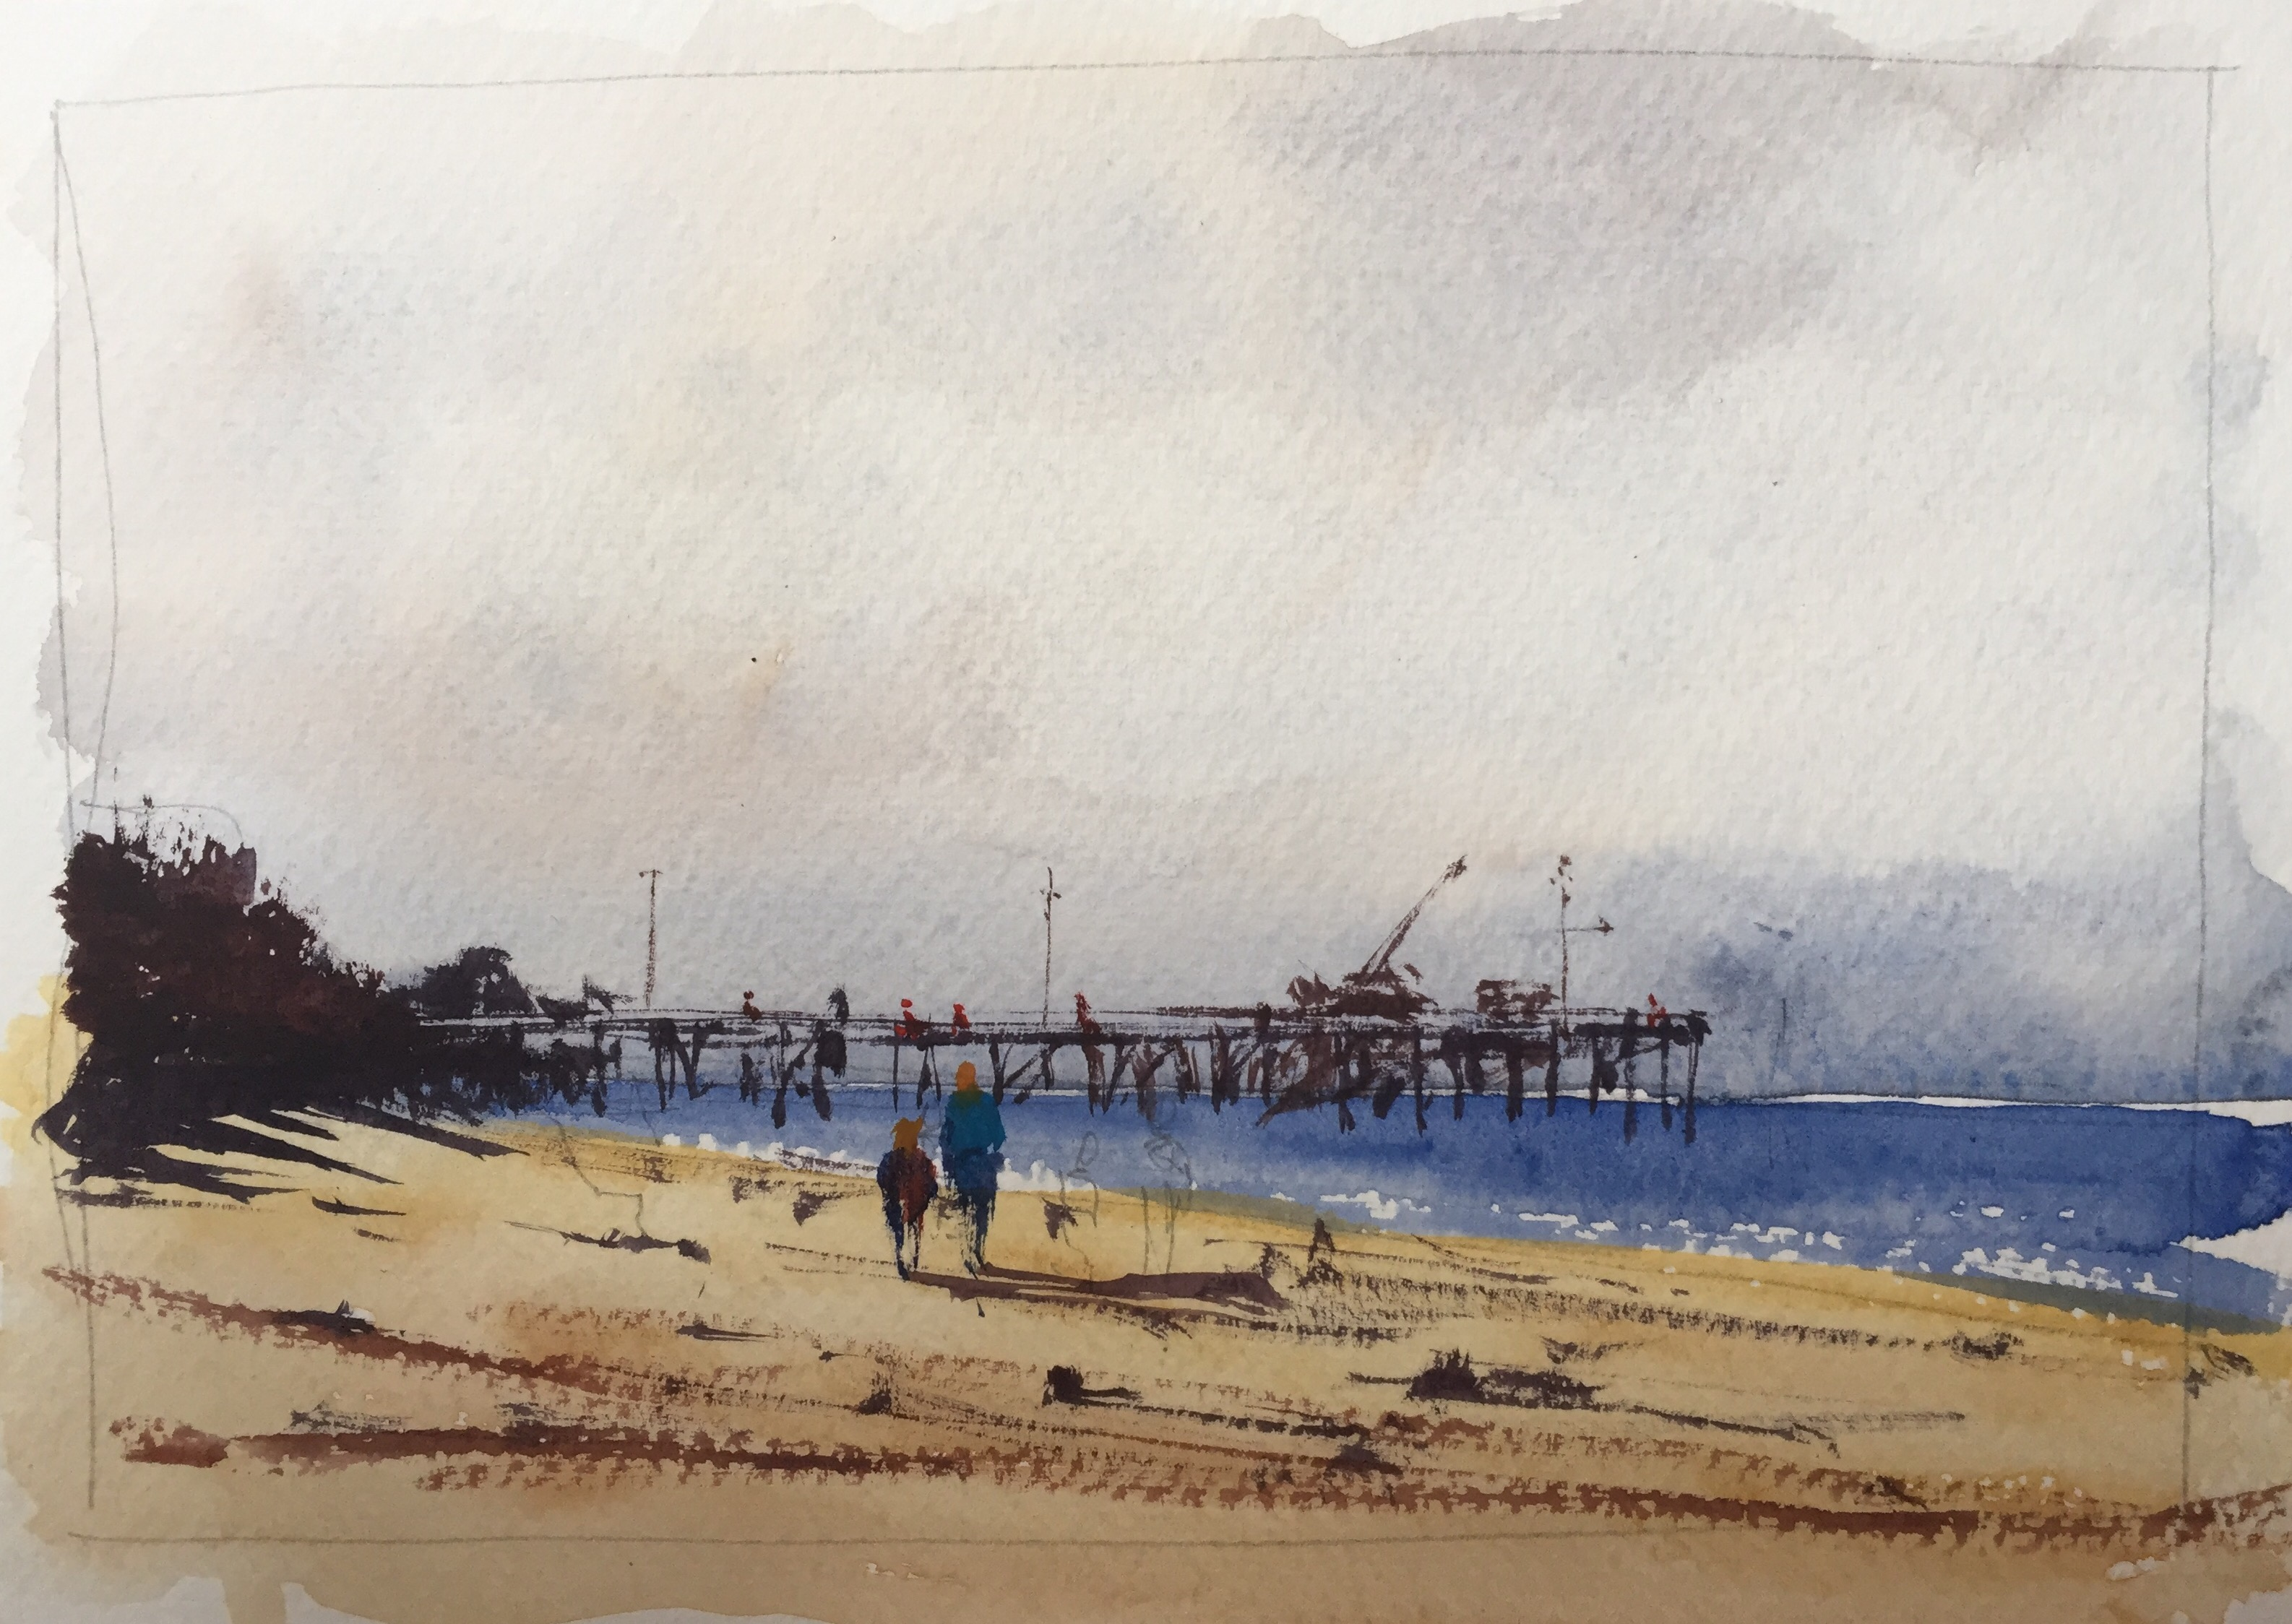 Watercolour sketch by John Haywood based on a Joseph Zbukvic original